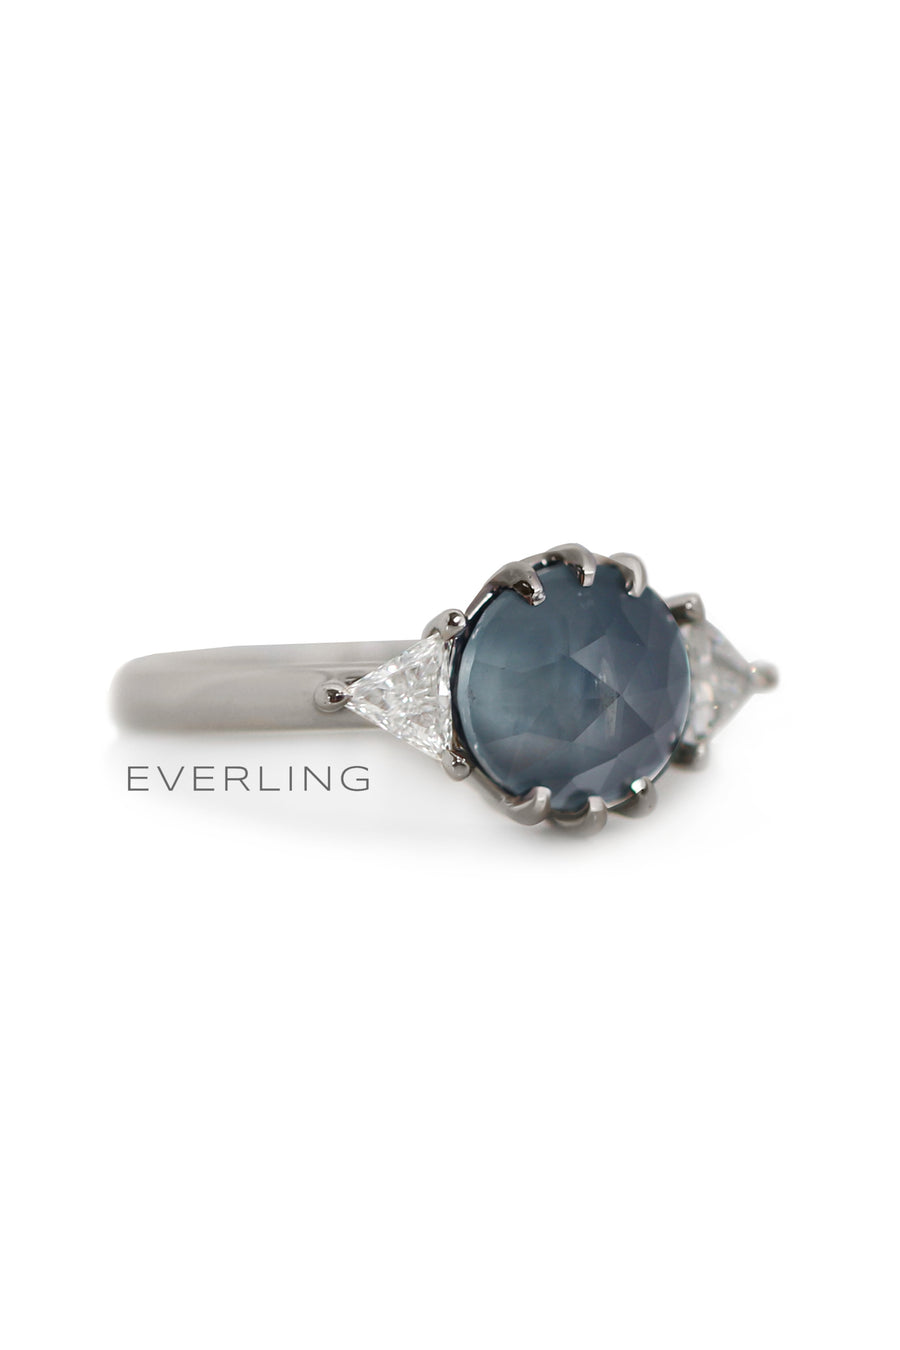 Recycled 18k palladium white gold ring with a rose cut Montana sapphire and Canadian sourced triangle diamonds. www.EverlingJewelry.com